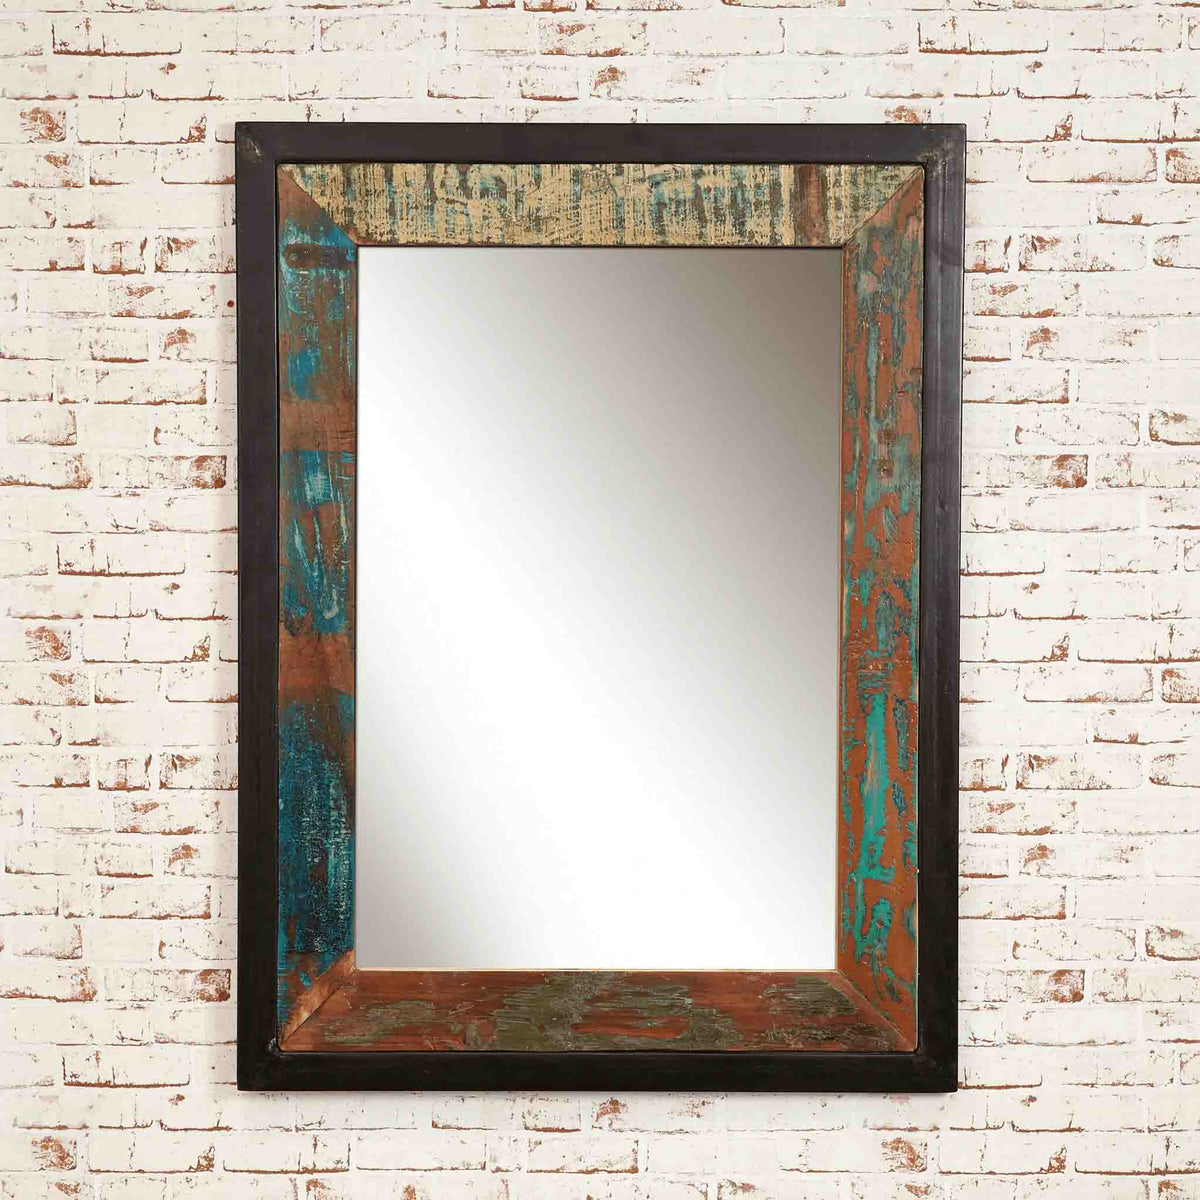 The Urban Chic Large Industrial Reclaimed Wood Mirror with Steel Frame